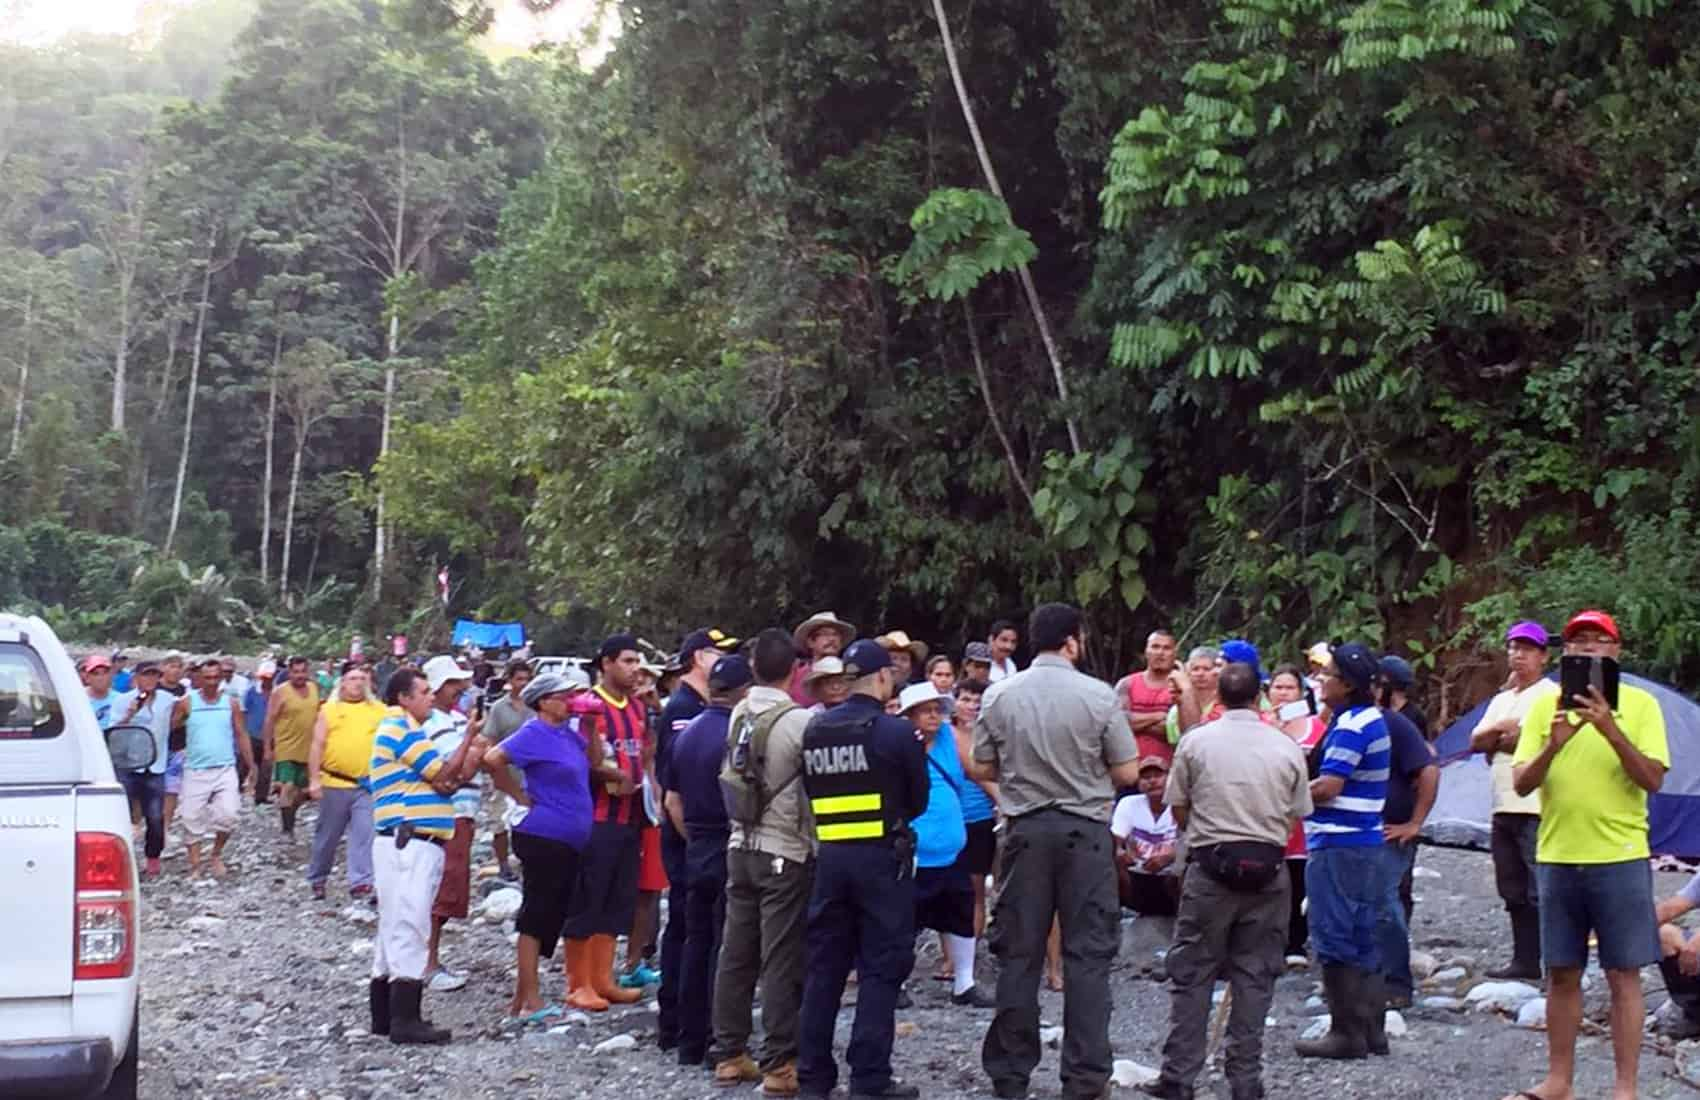 Gold miners demonstration at Costa Rica's Corcovado National Park. Feb. 20, 2017.